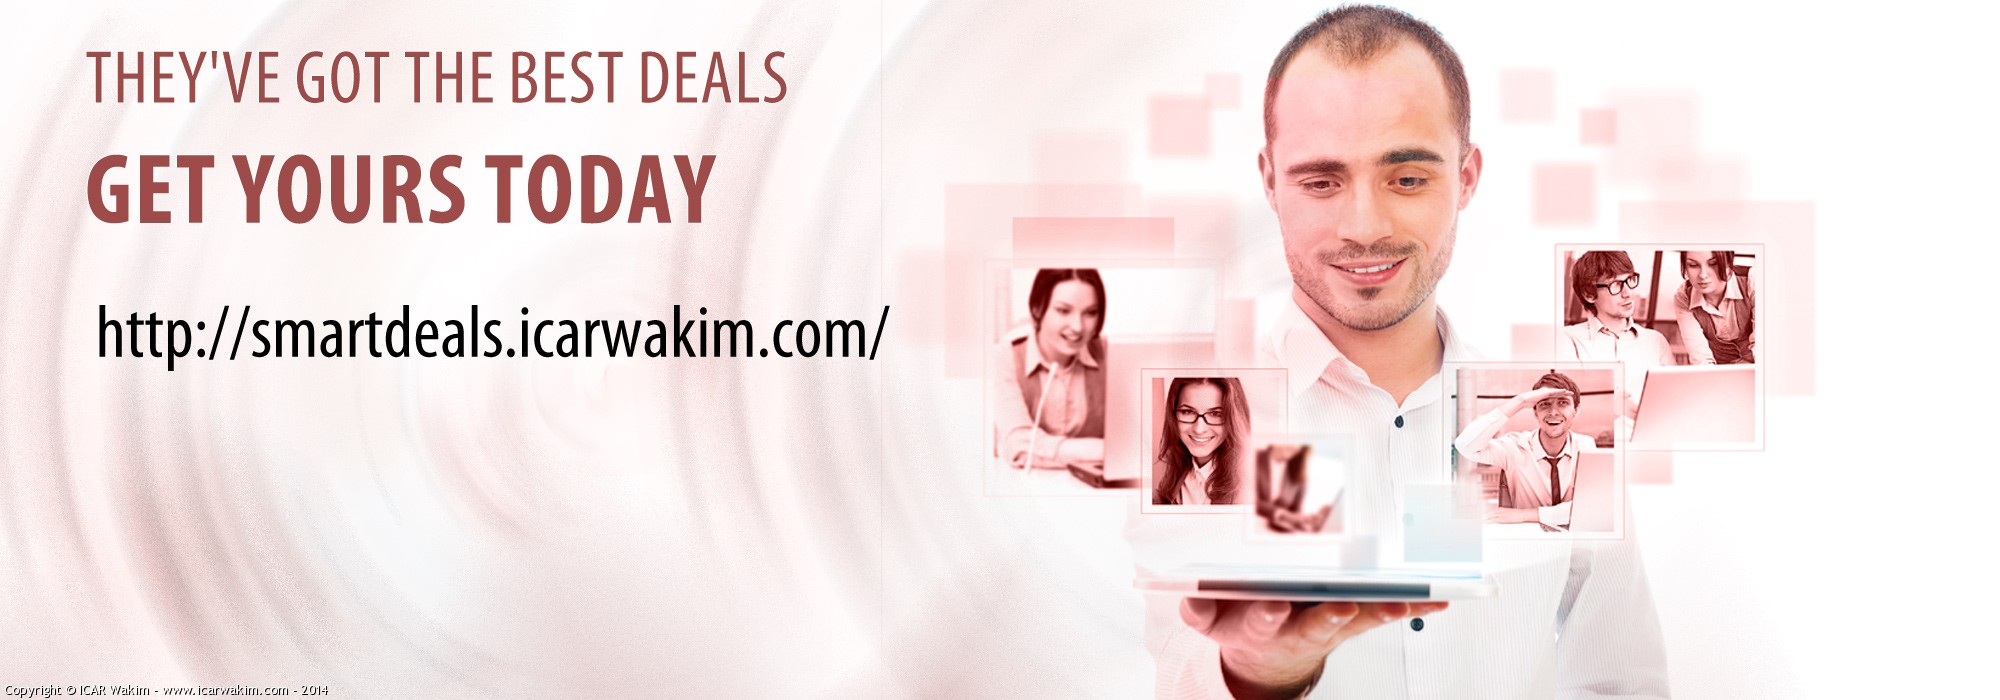 ICAR Wakim Smart Deals